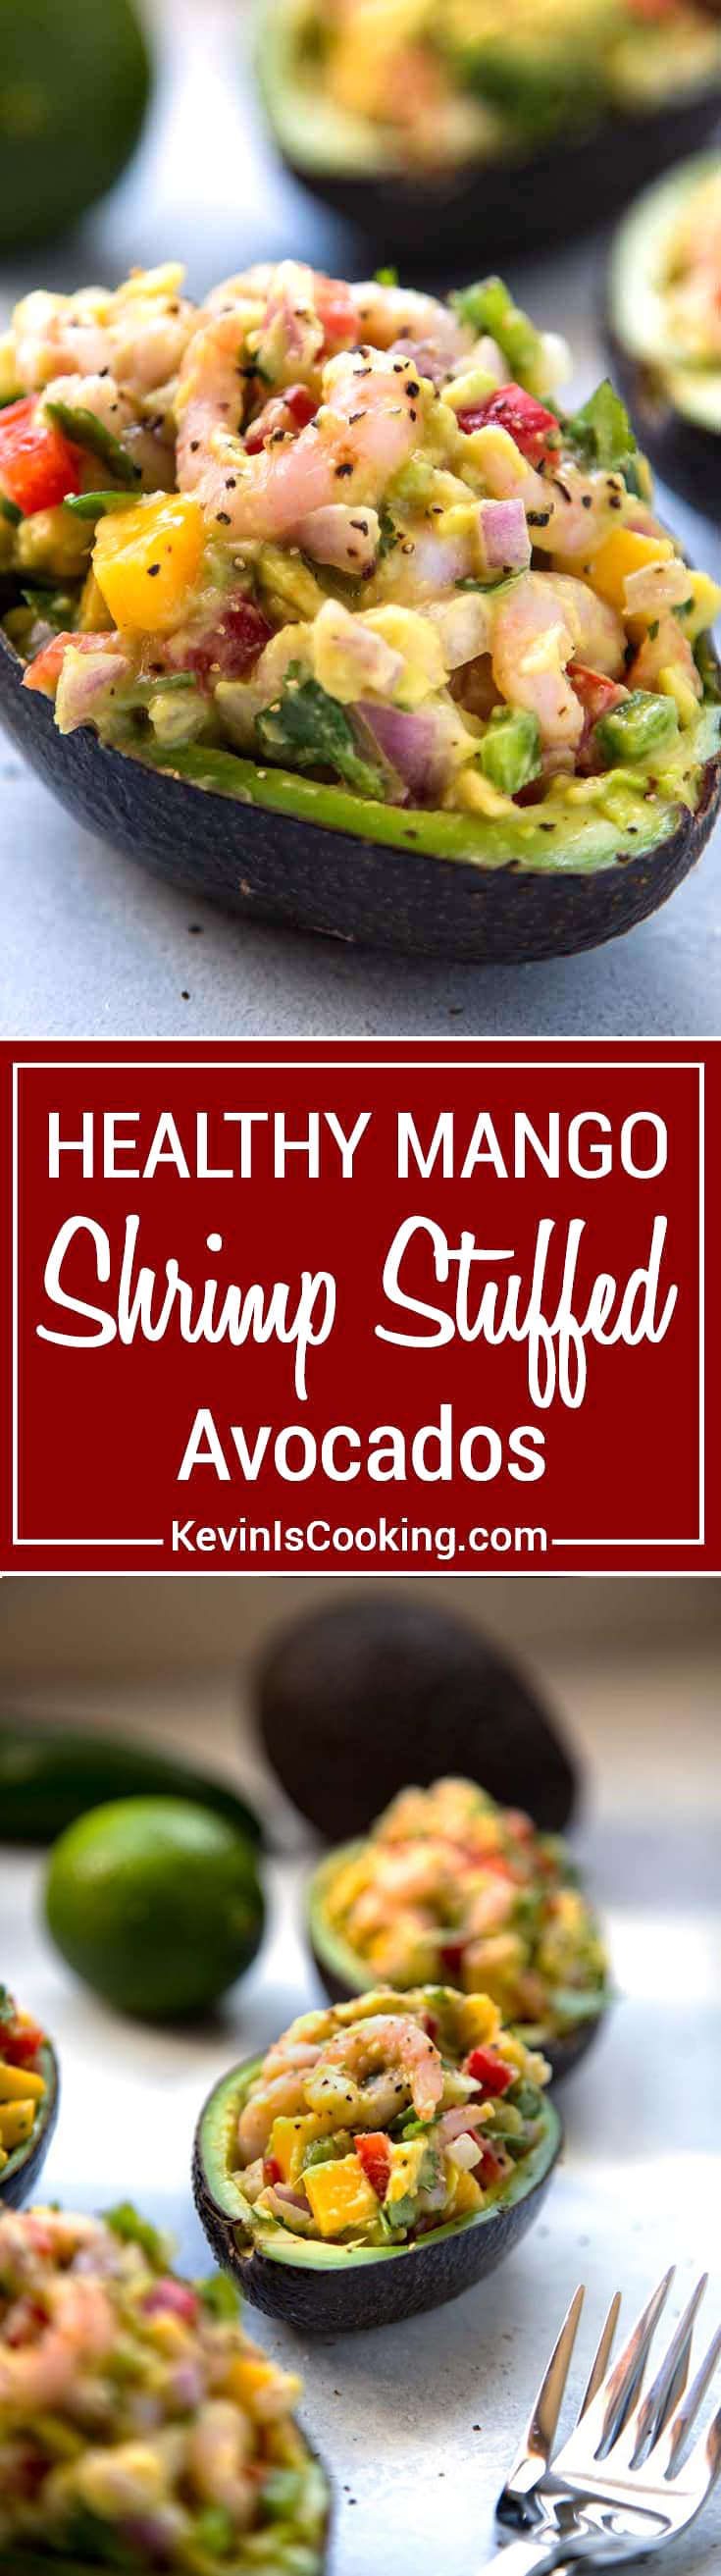 Mango Shrimp Stuffed Avocado - easy, healthy and filled with shrimp, mango and crunchy vegetables, a perfect appetizer or light lunch that's good for you.